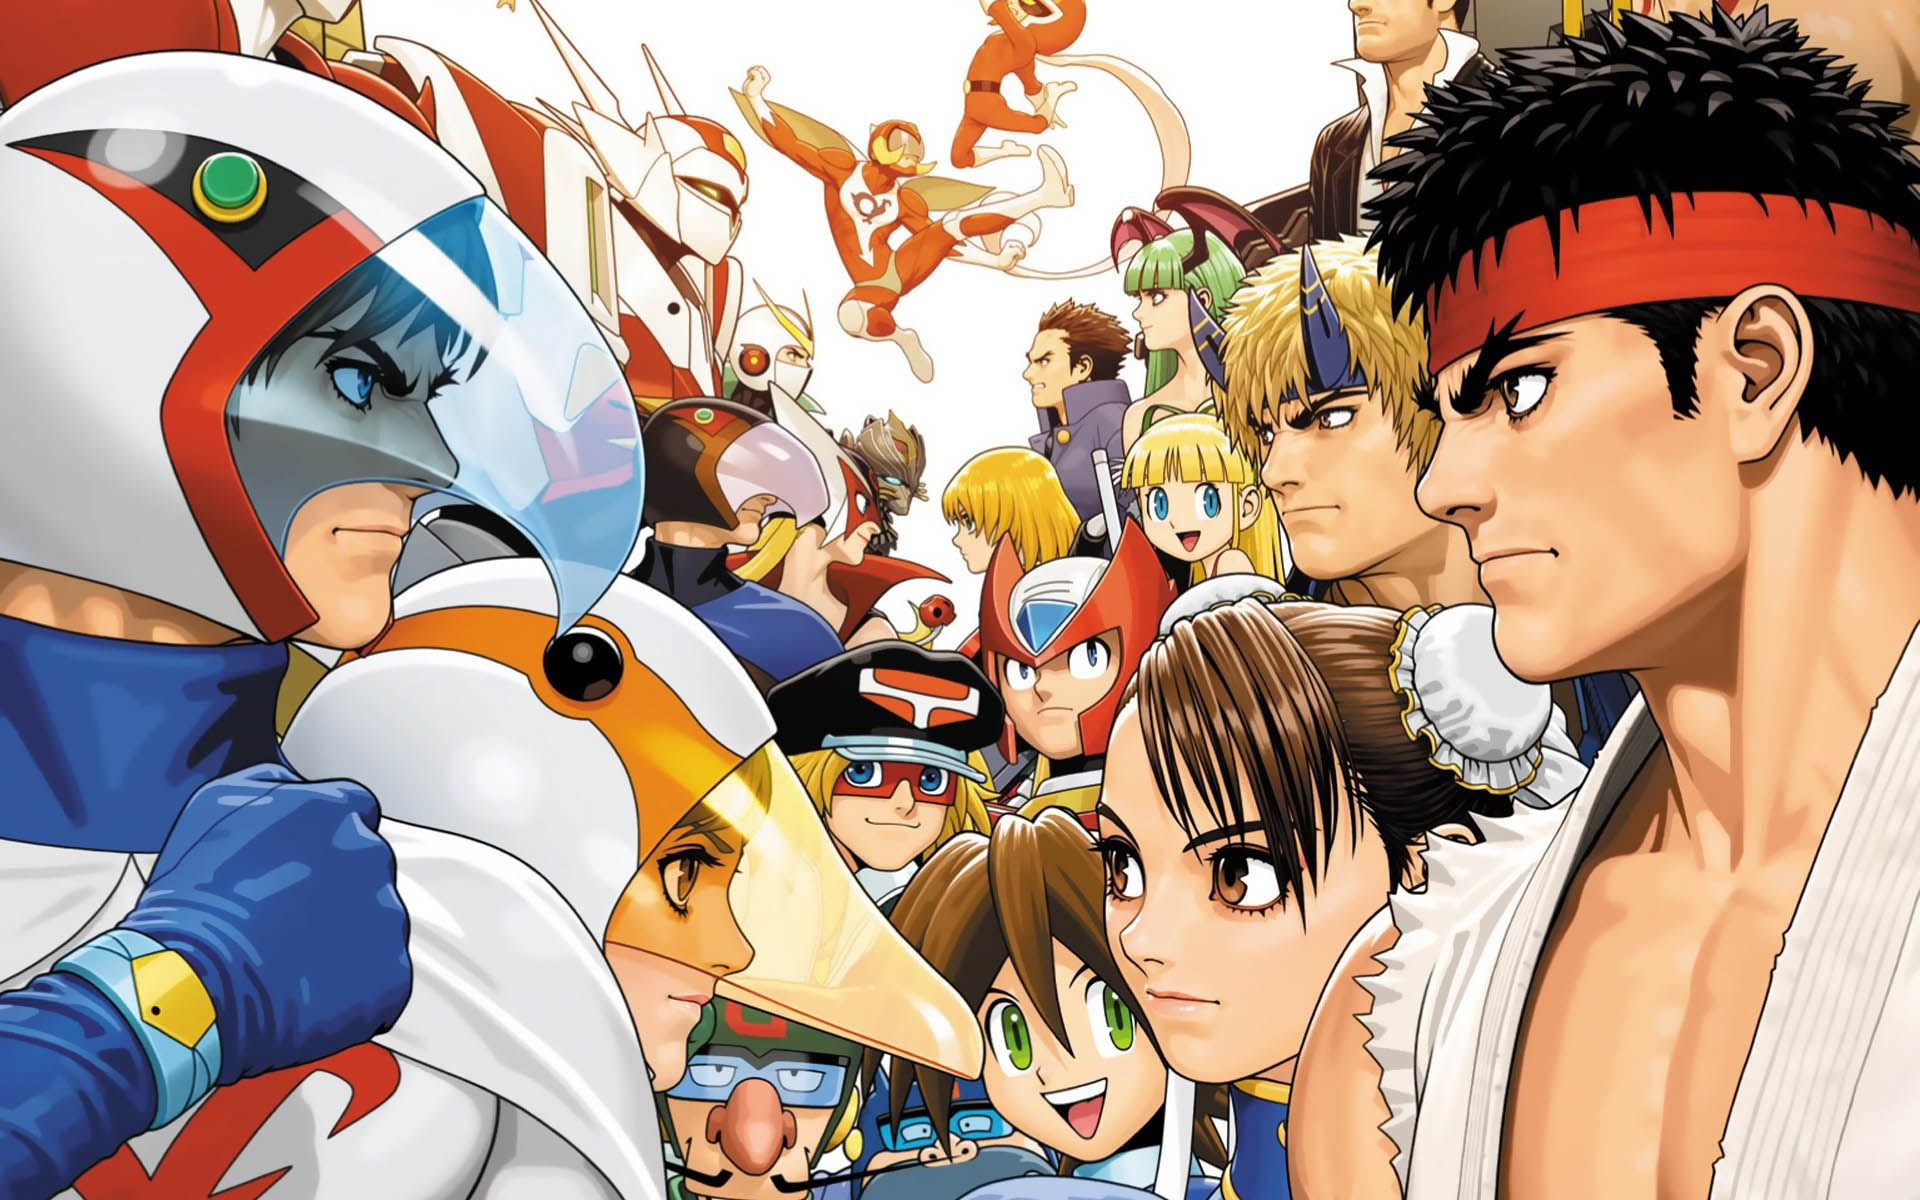 Tatsunoko Vs Capcom Hd Wallpapers High Quality All Hd Wallpapers Capcom Games Marvel Vs Capcom Capcom